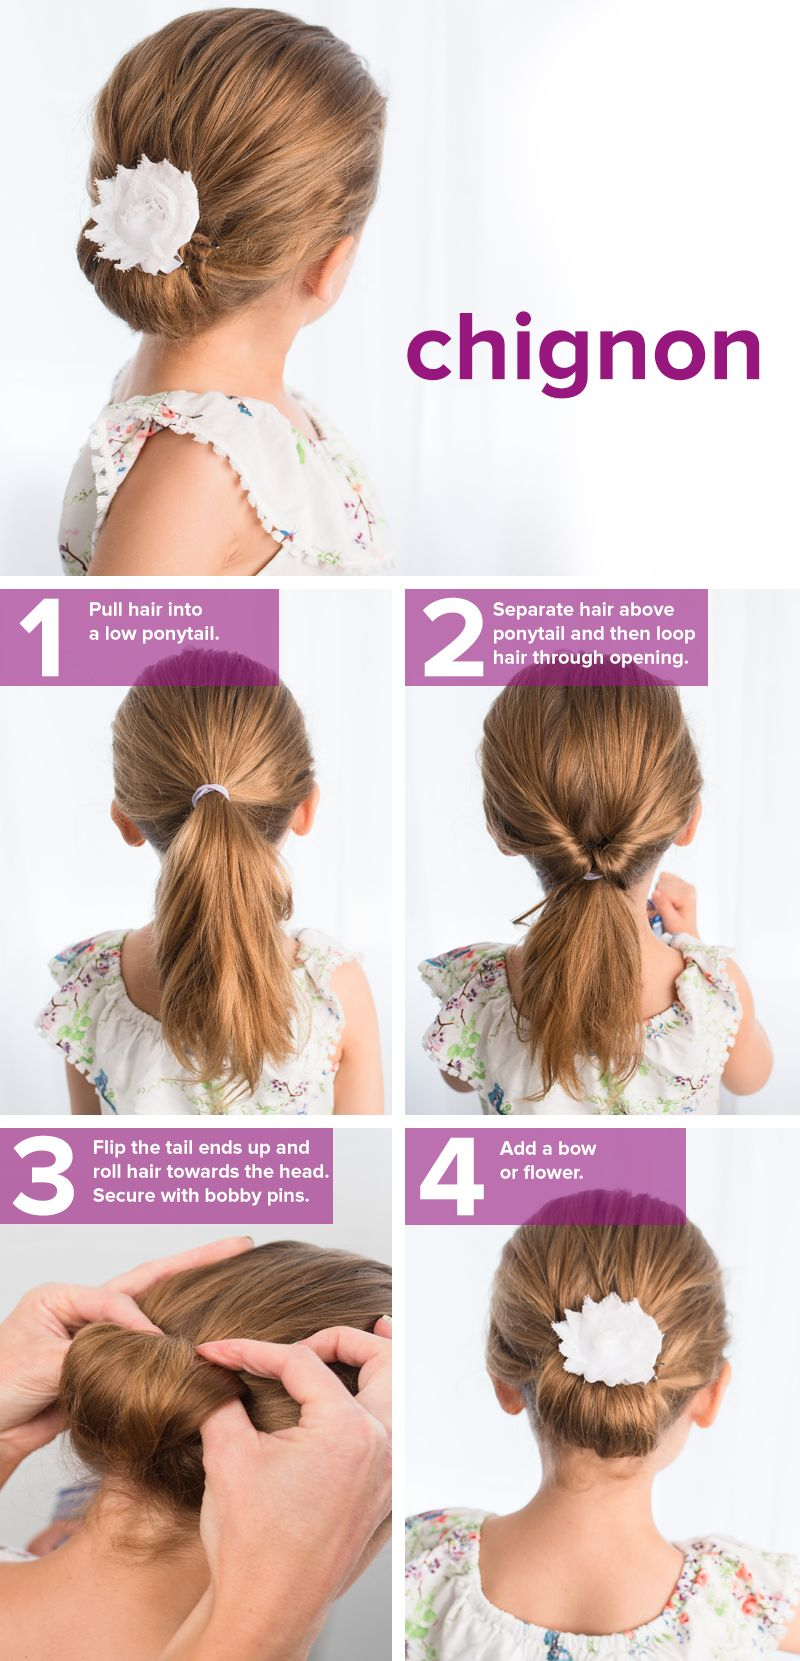 Easy And Cute Hairstyles Custom 5 Fast Easy Cute Hairstyles For Girls  Pinterest  Chignon Hair